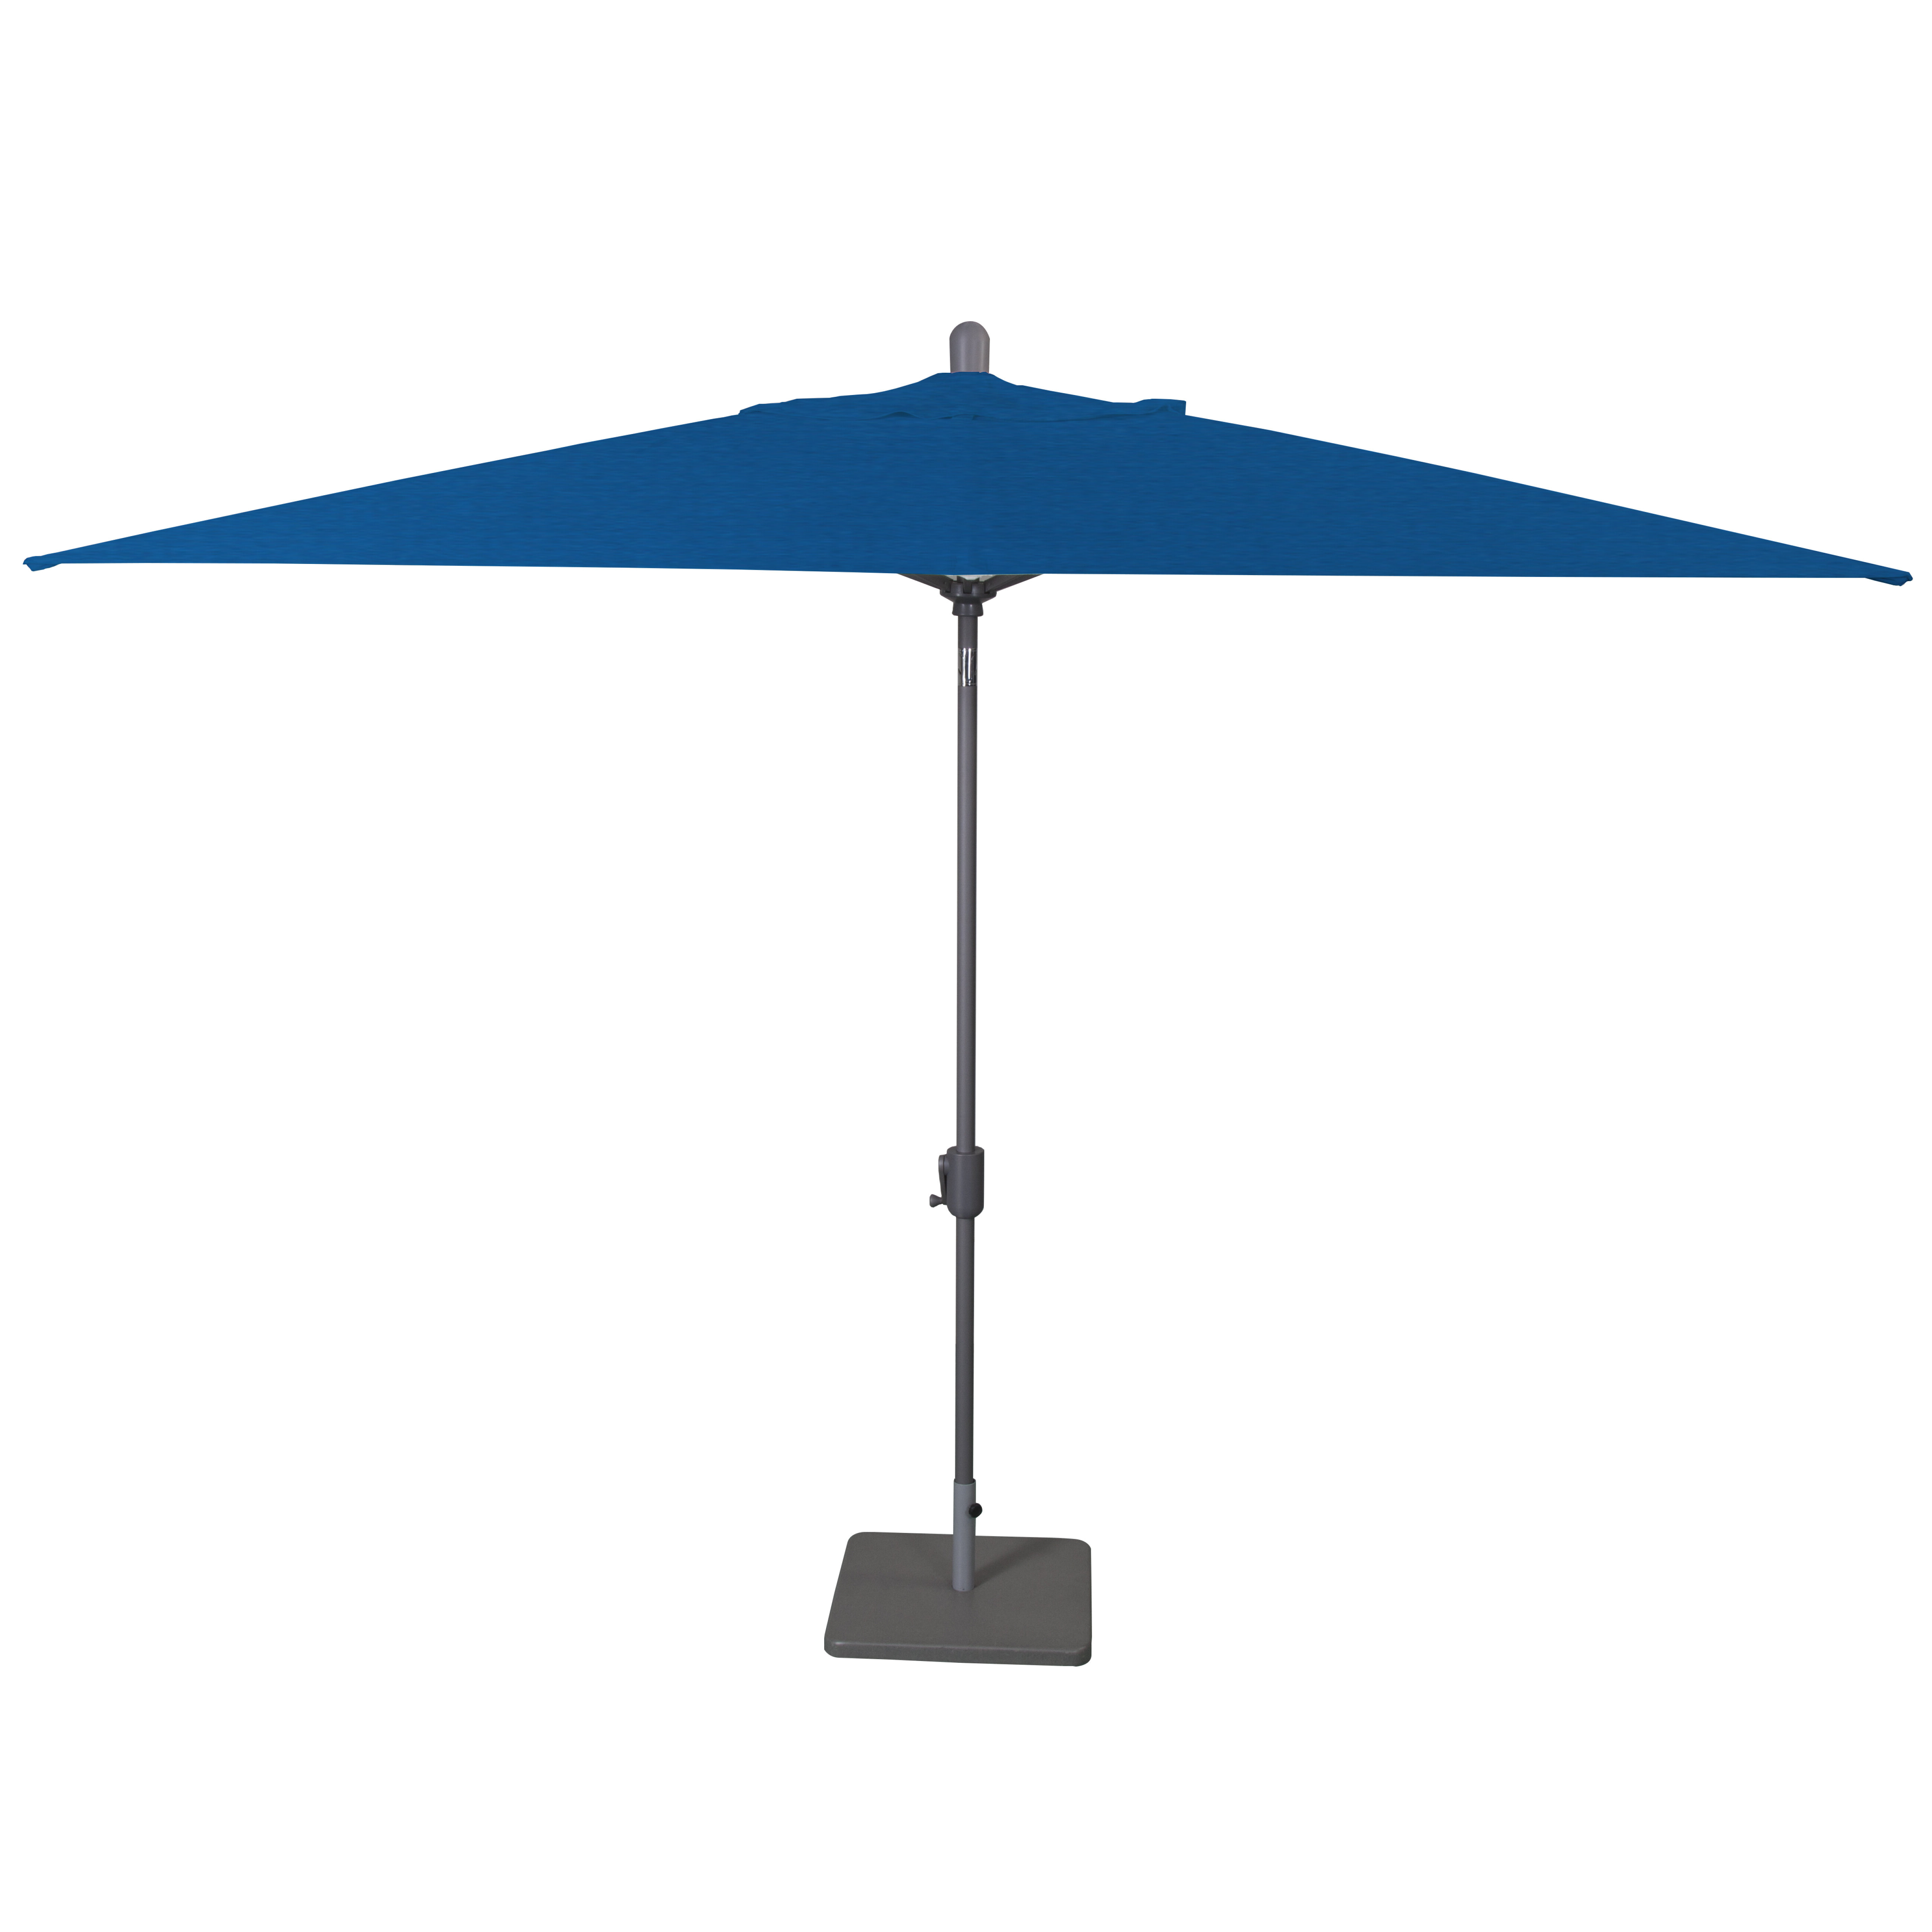 Maglione Fabric 4cantilever Umbrellas Throughout Most Up To Date Wieczorek Auto Tilt 10' X (View 8 of 20)